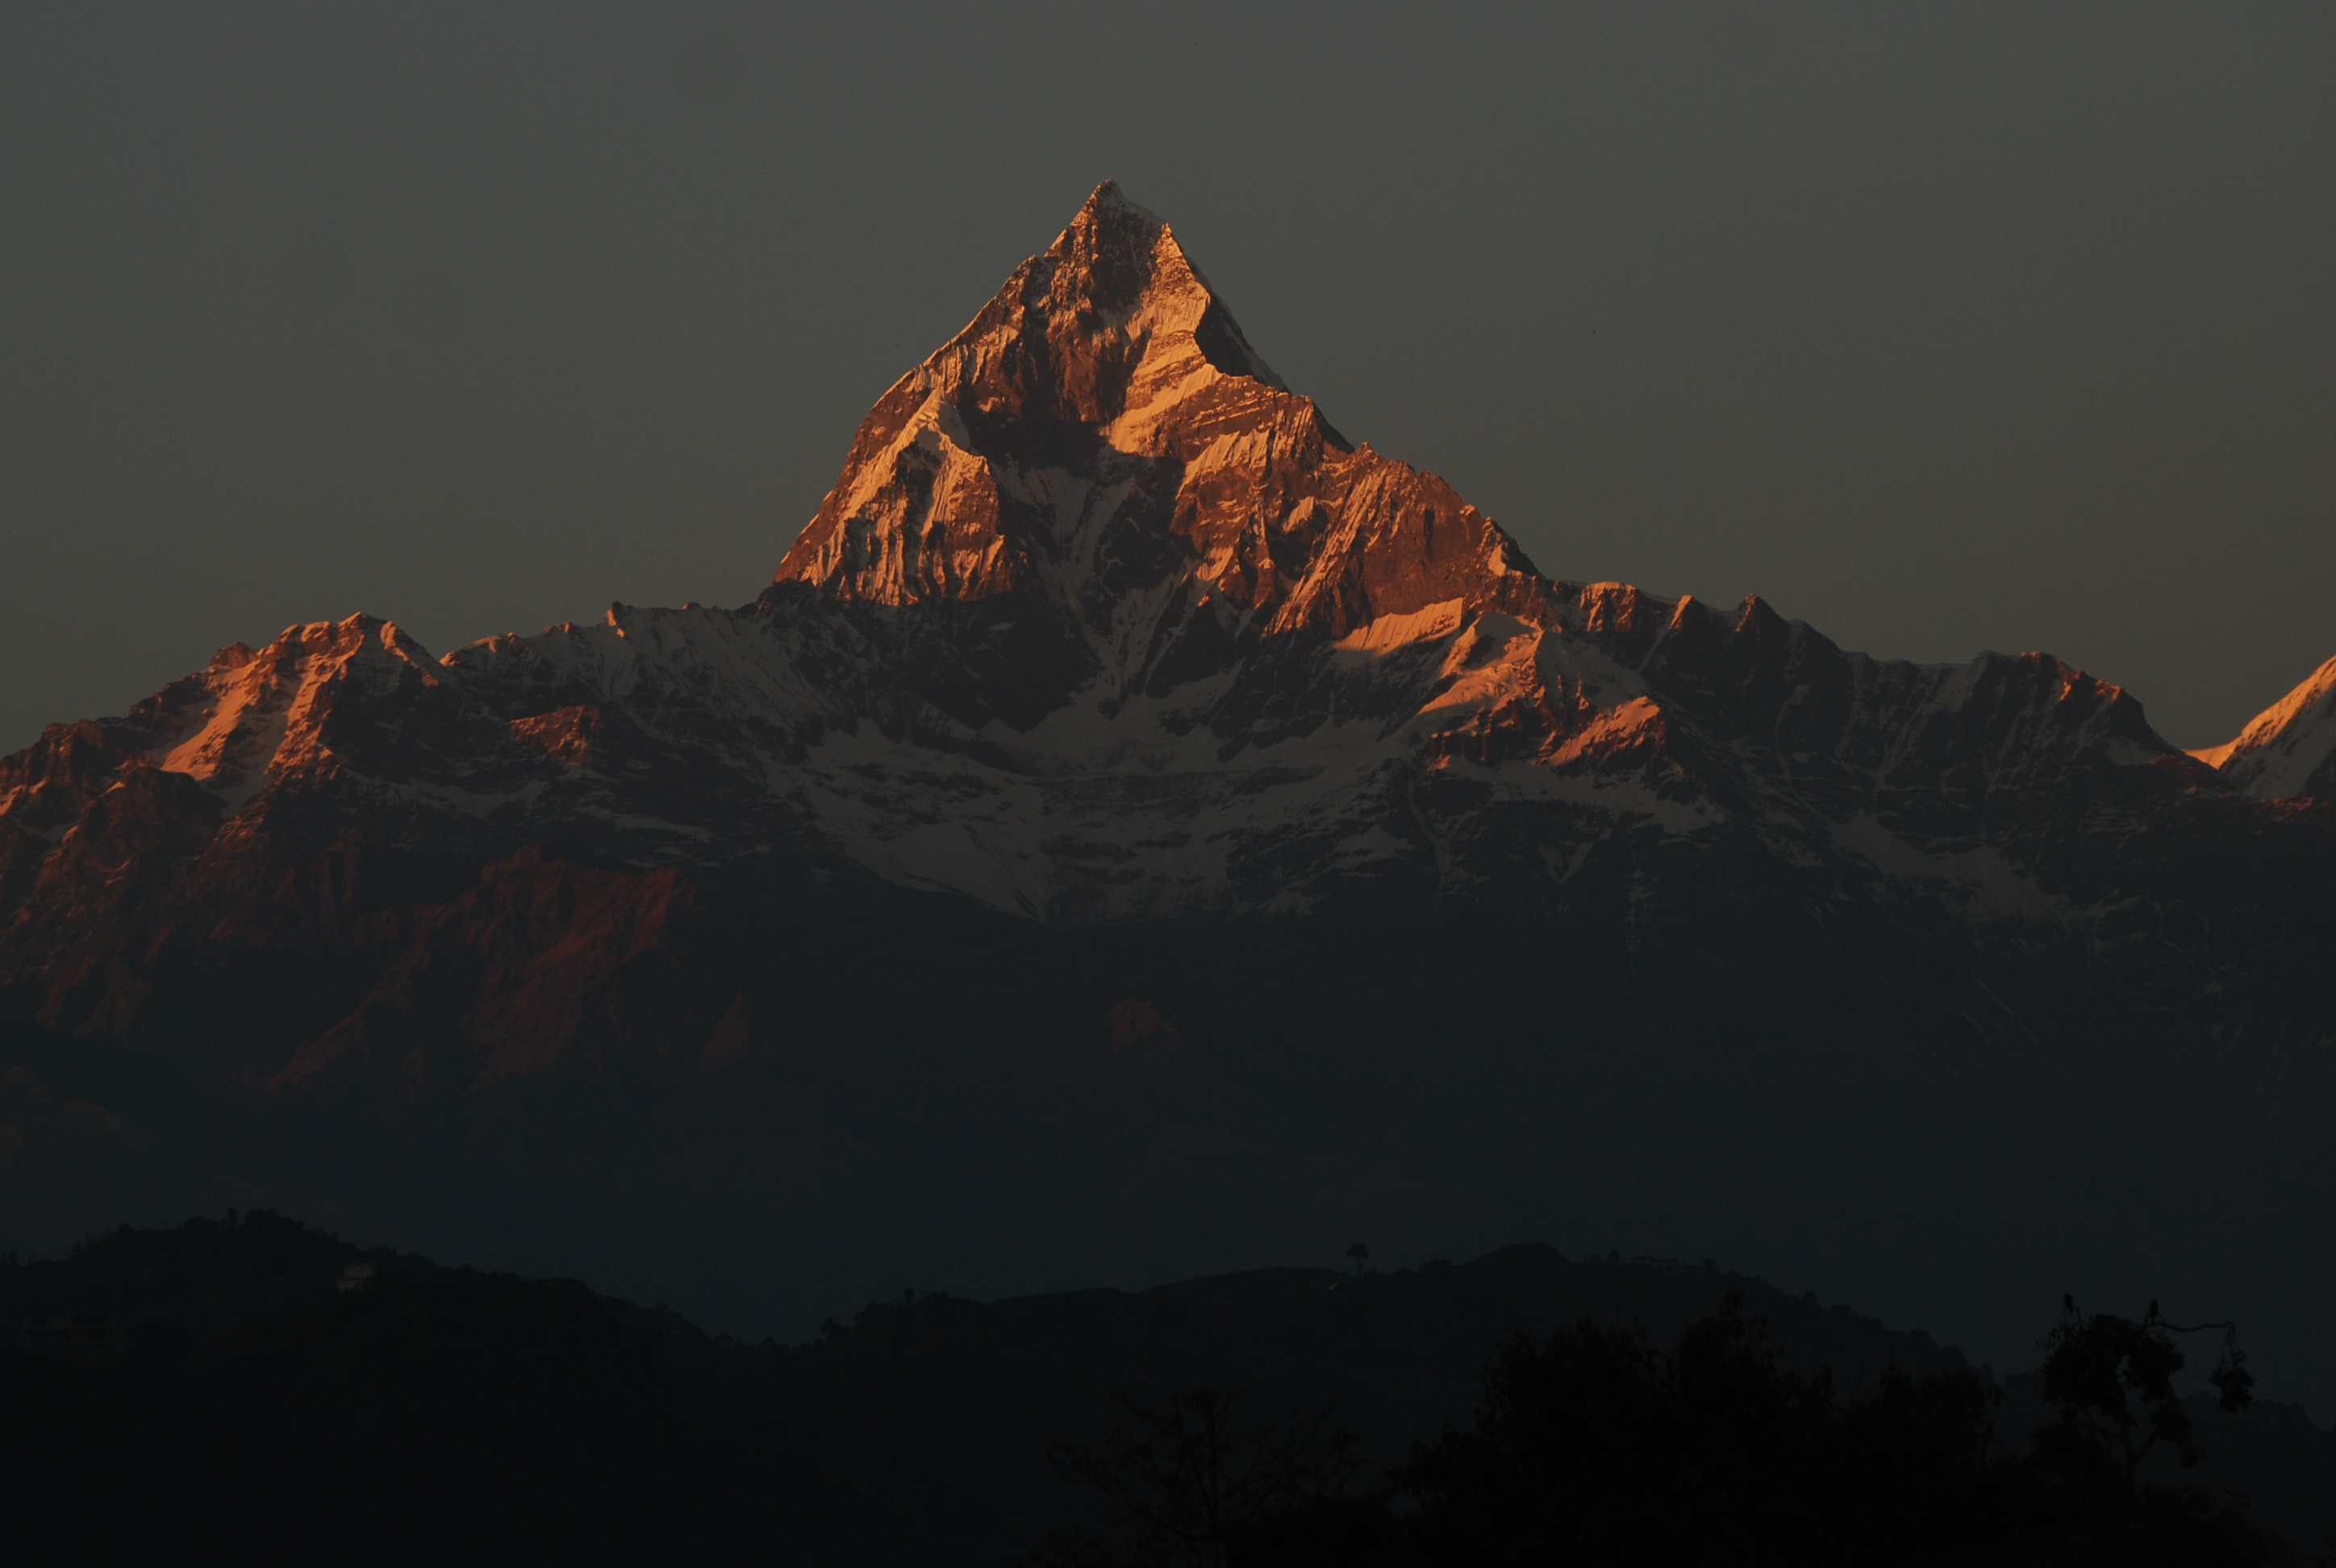 Mount Fishtail from Pokhara